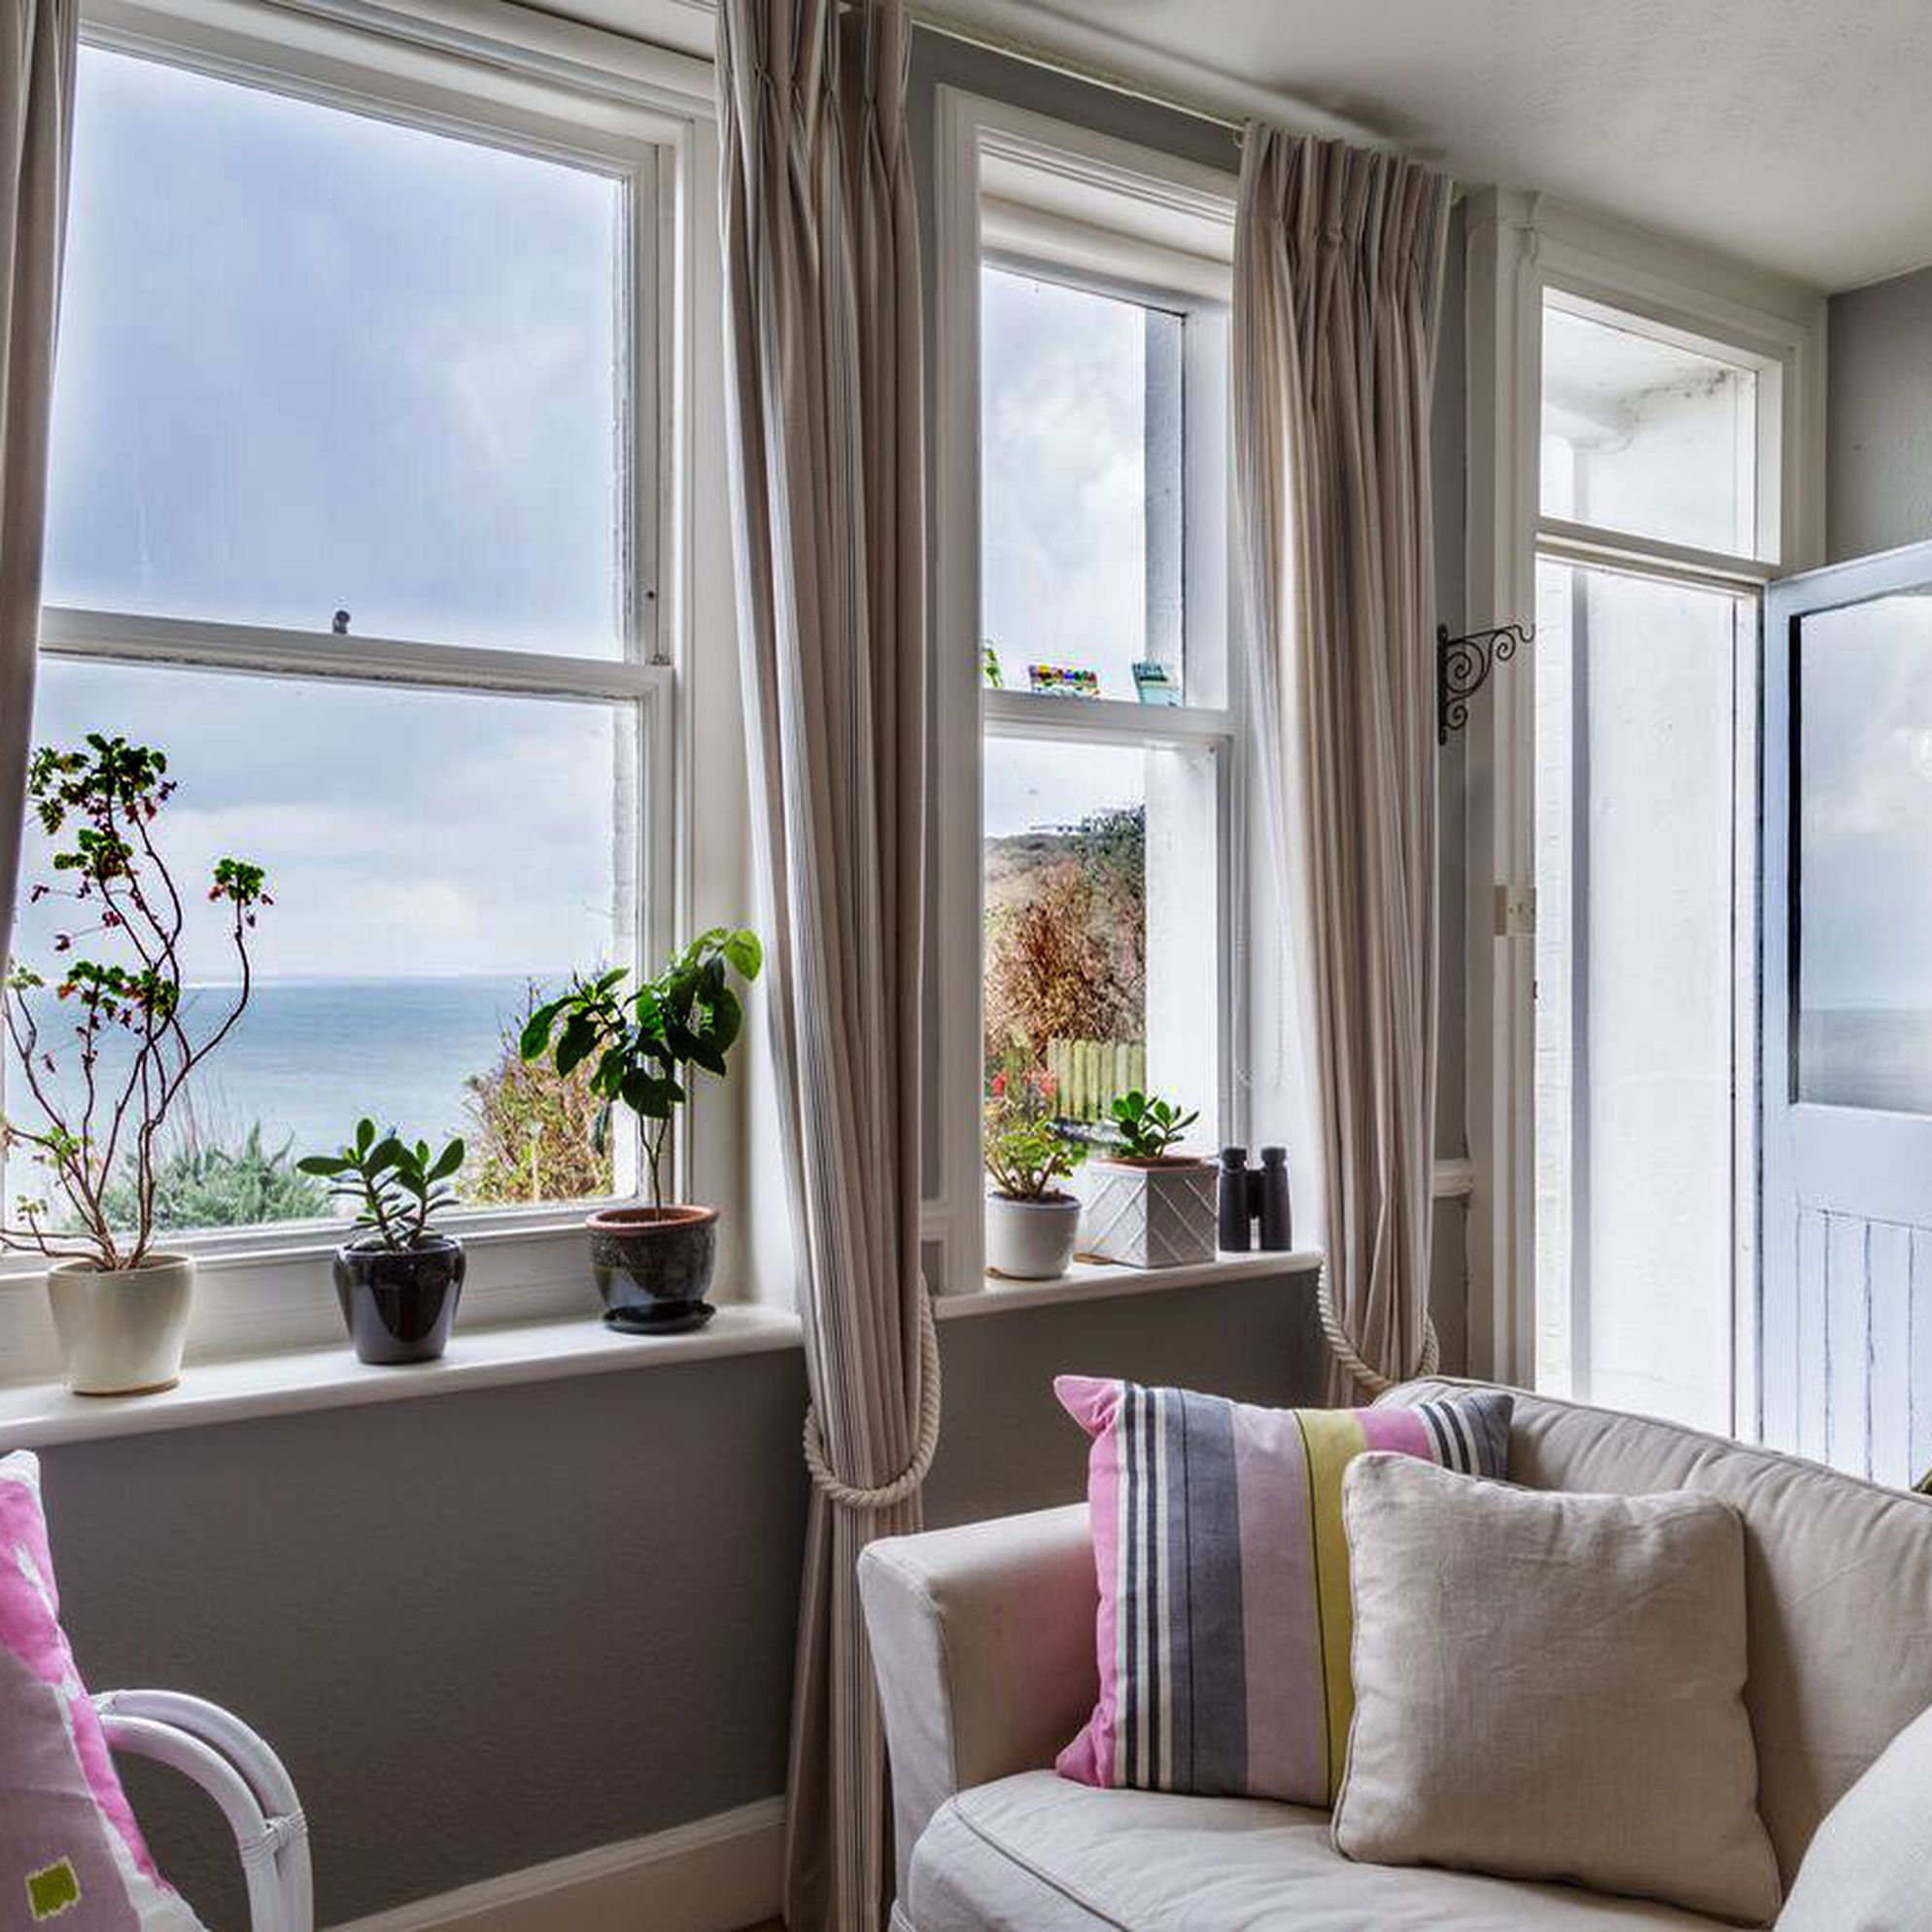 Beach retreats in Devon